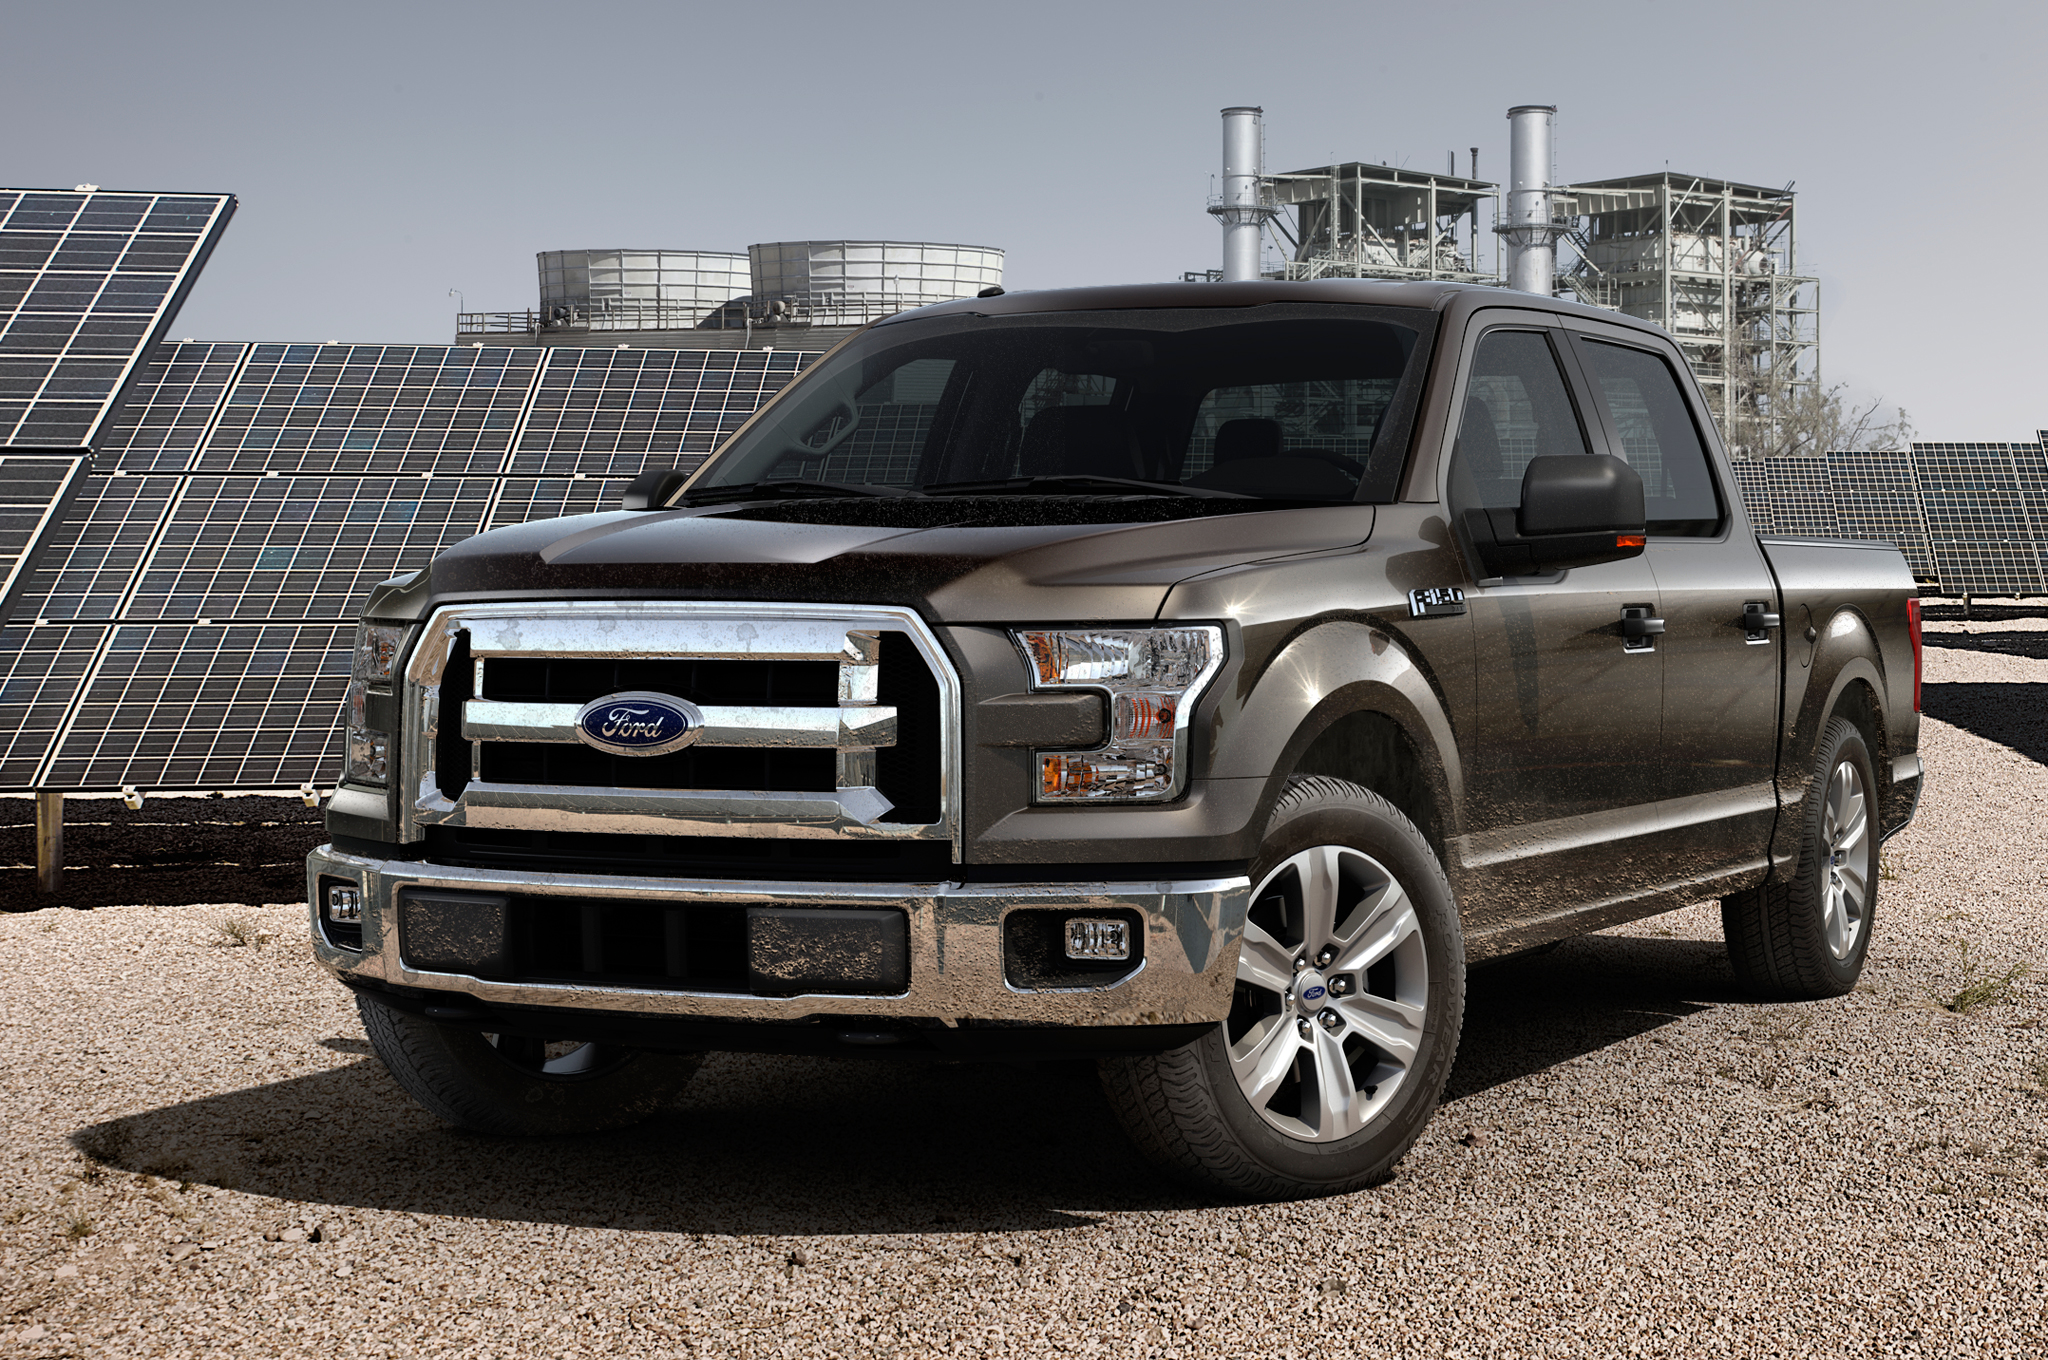 hight resolution of 2015 ford f 150 2 7l ecoboost rated 325 hp 375 lb ft tows max 8500 lbs